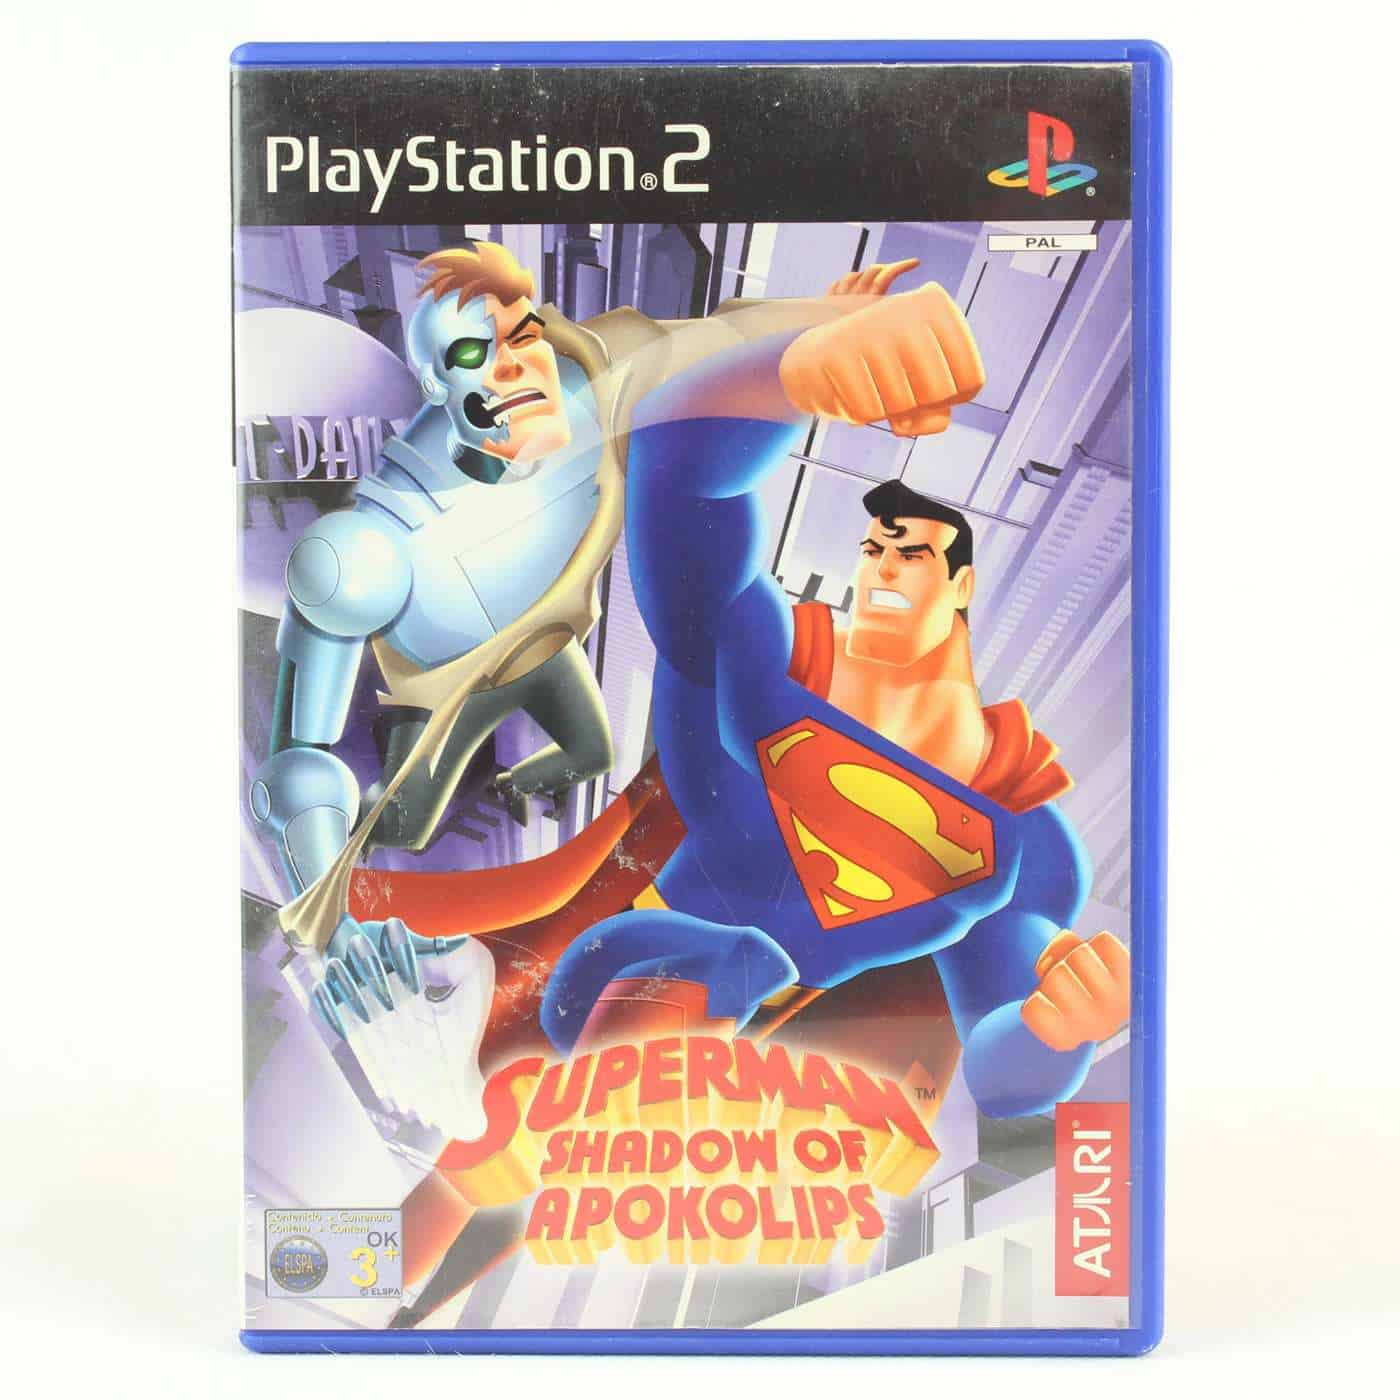 Superman: Shadow of Apokolips (Playstation 2 / PS2)